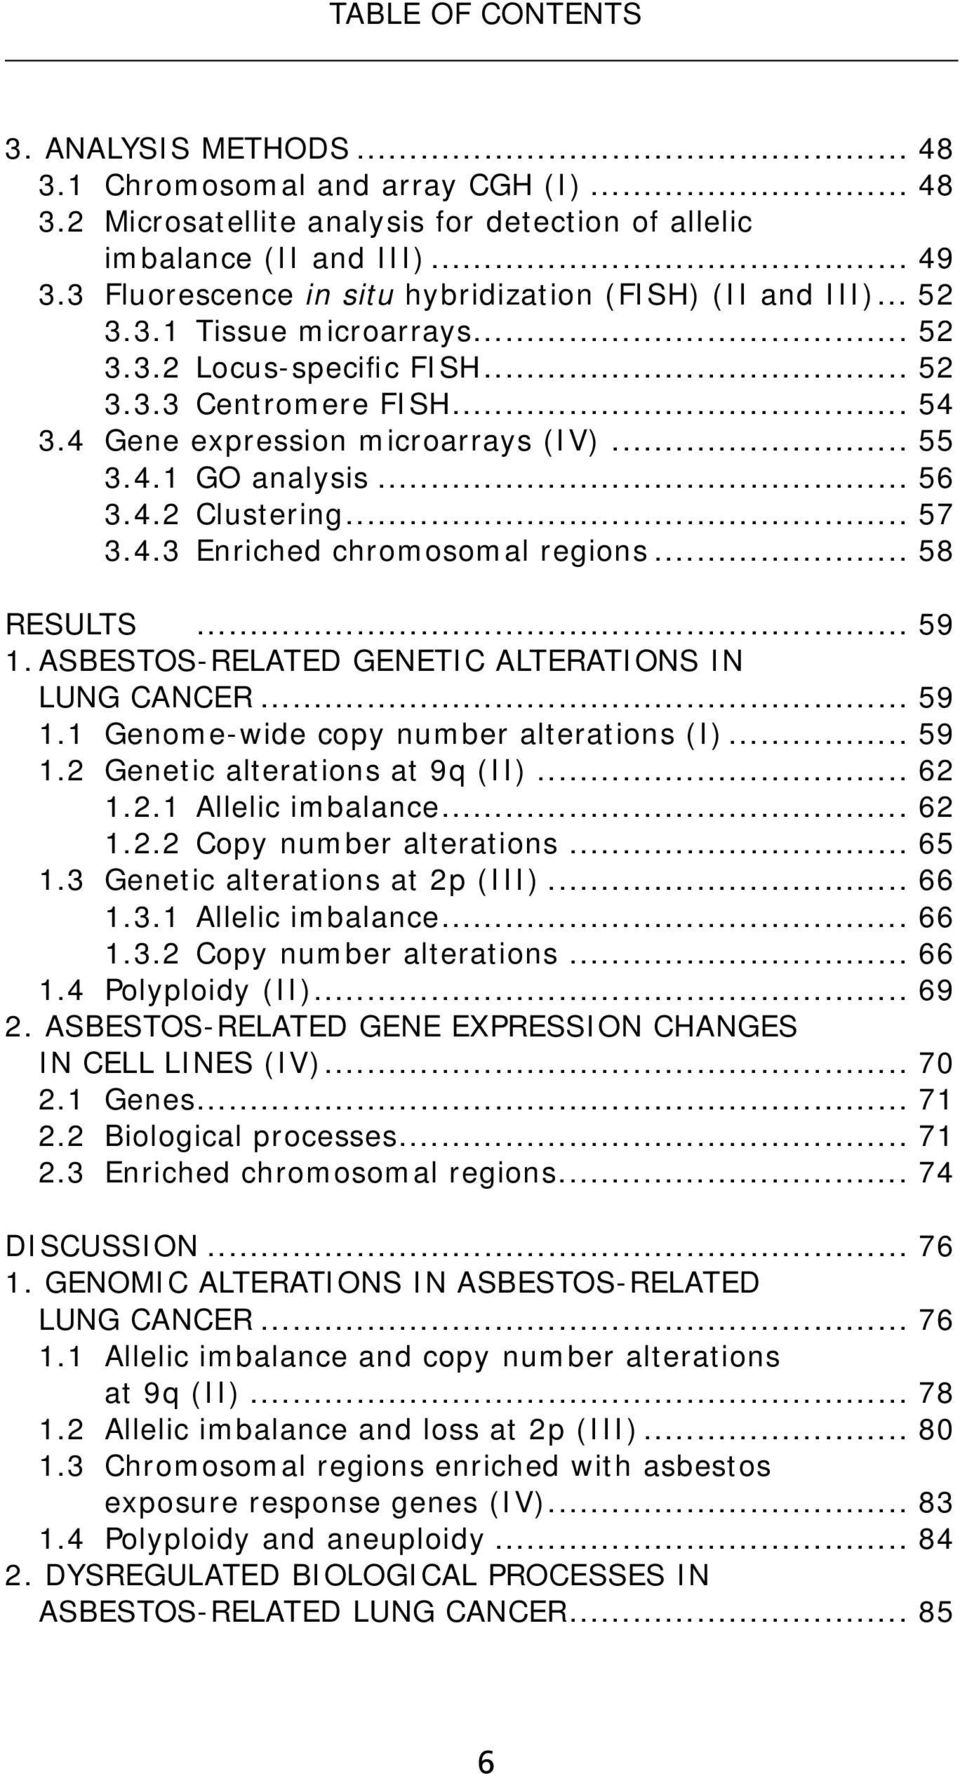 4.1 GO analysis... 56 3.4.2 Clustering... 57 3.4.3 Enriched chromosomal regions... 58 RESULTS... 59 1. ASBESTOS-RELATED GENETIC ALTERATIONS IN LUNG CANCER... 59 1.1 Genome-wide copy number alterations (I).